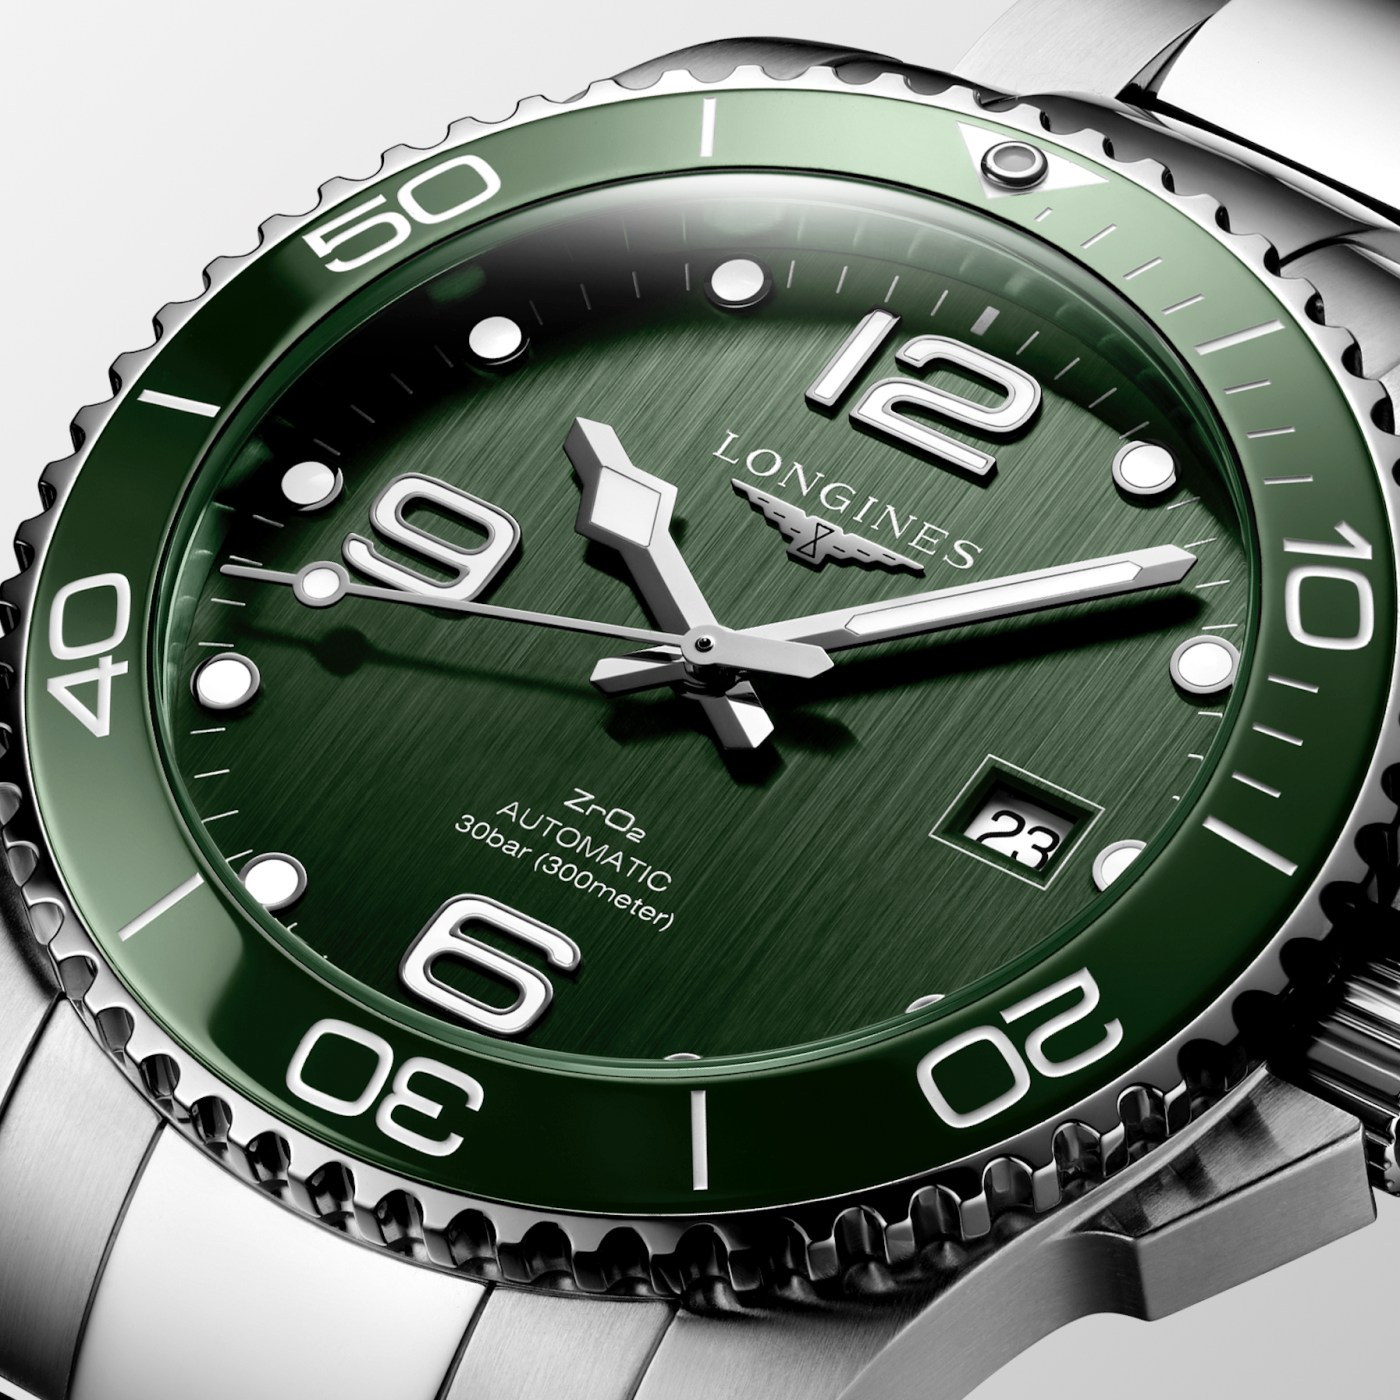 Longines HydroConquest Bright Green Ceramic dial close-up